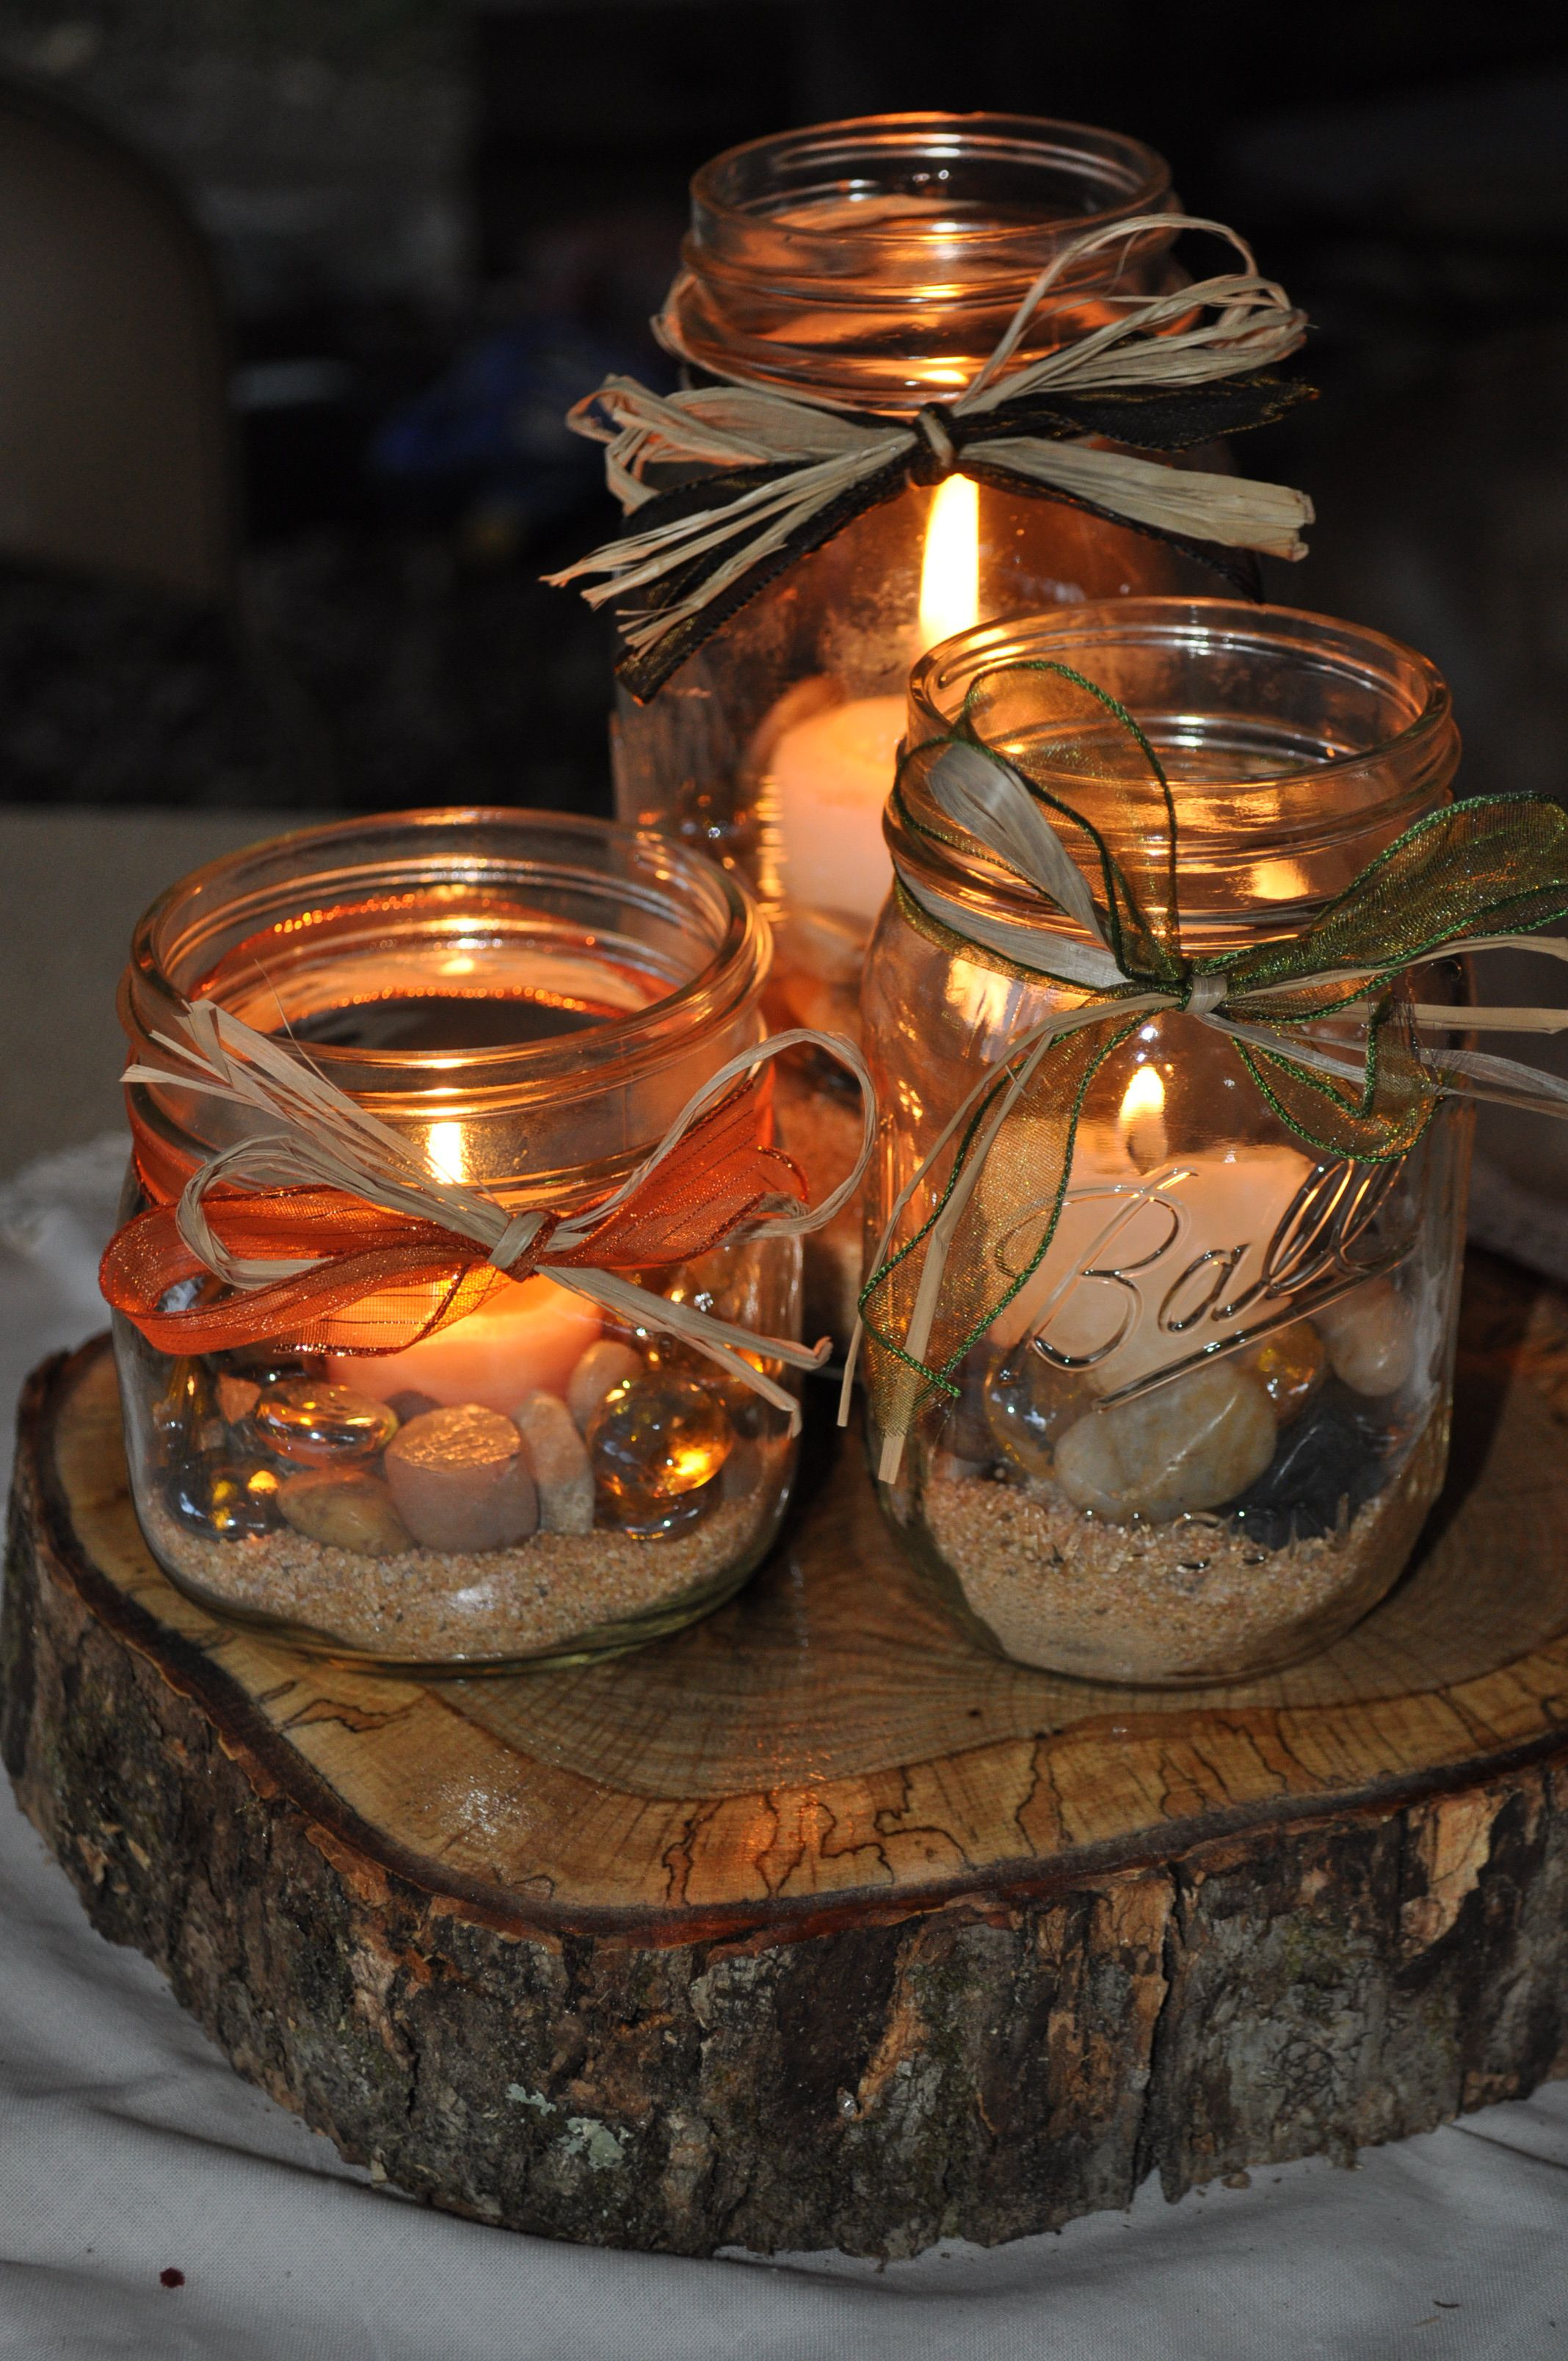 Our centerpieceseated by myself and my maiden of honor sherri our centerpieceseated by myself and my maiden of honor sherri parsons mace very simpleoak slab mason jars raffia ribbon candles and sand and solutioingenieria Images